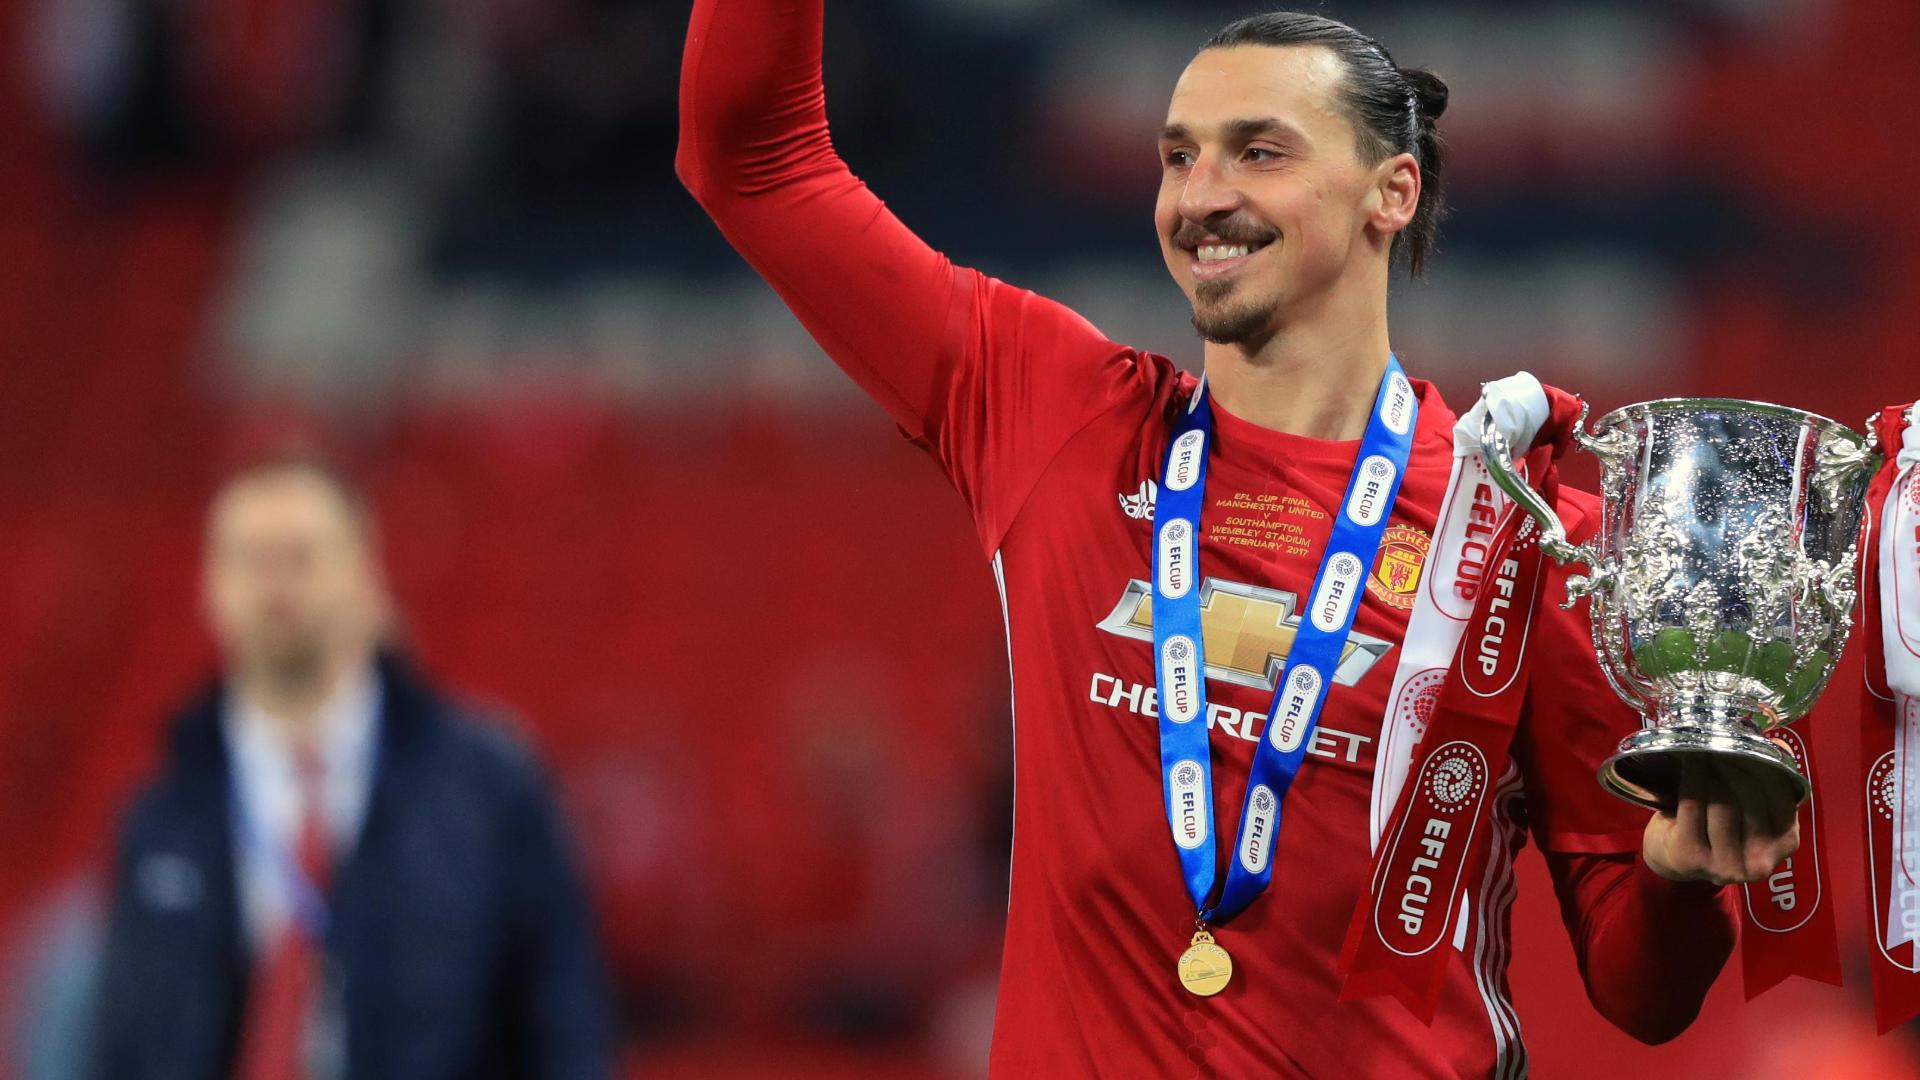 New LA Galaxy Signing Zlatan Ibrahimović Gives Classic Interview After Stunning Debut